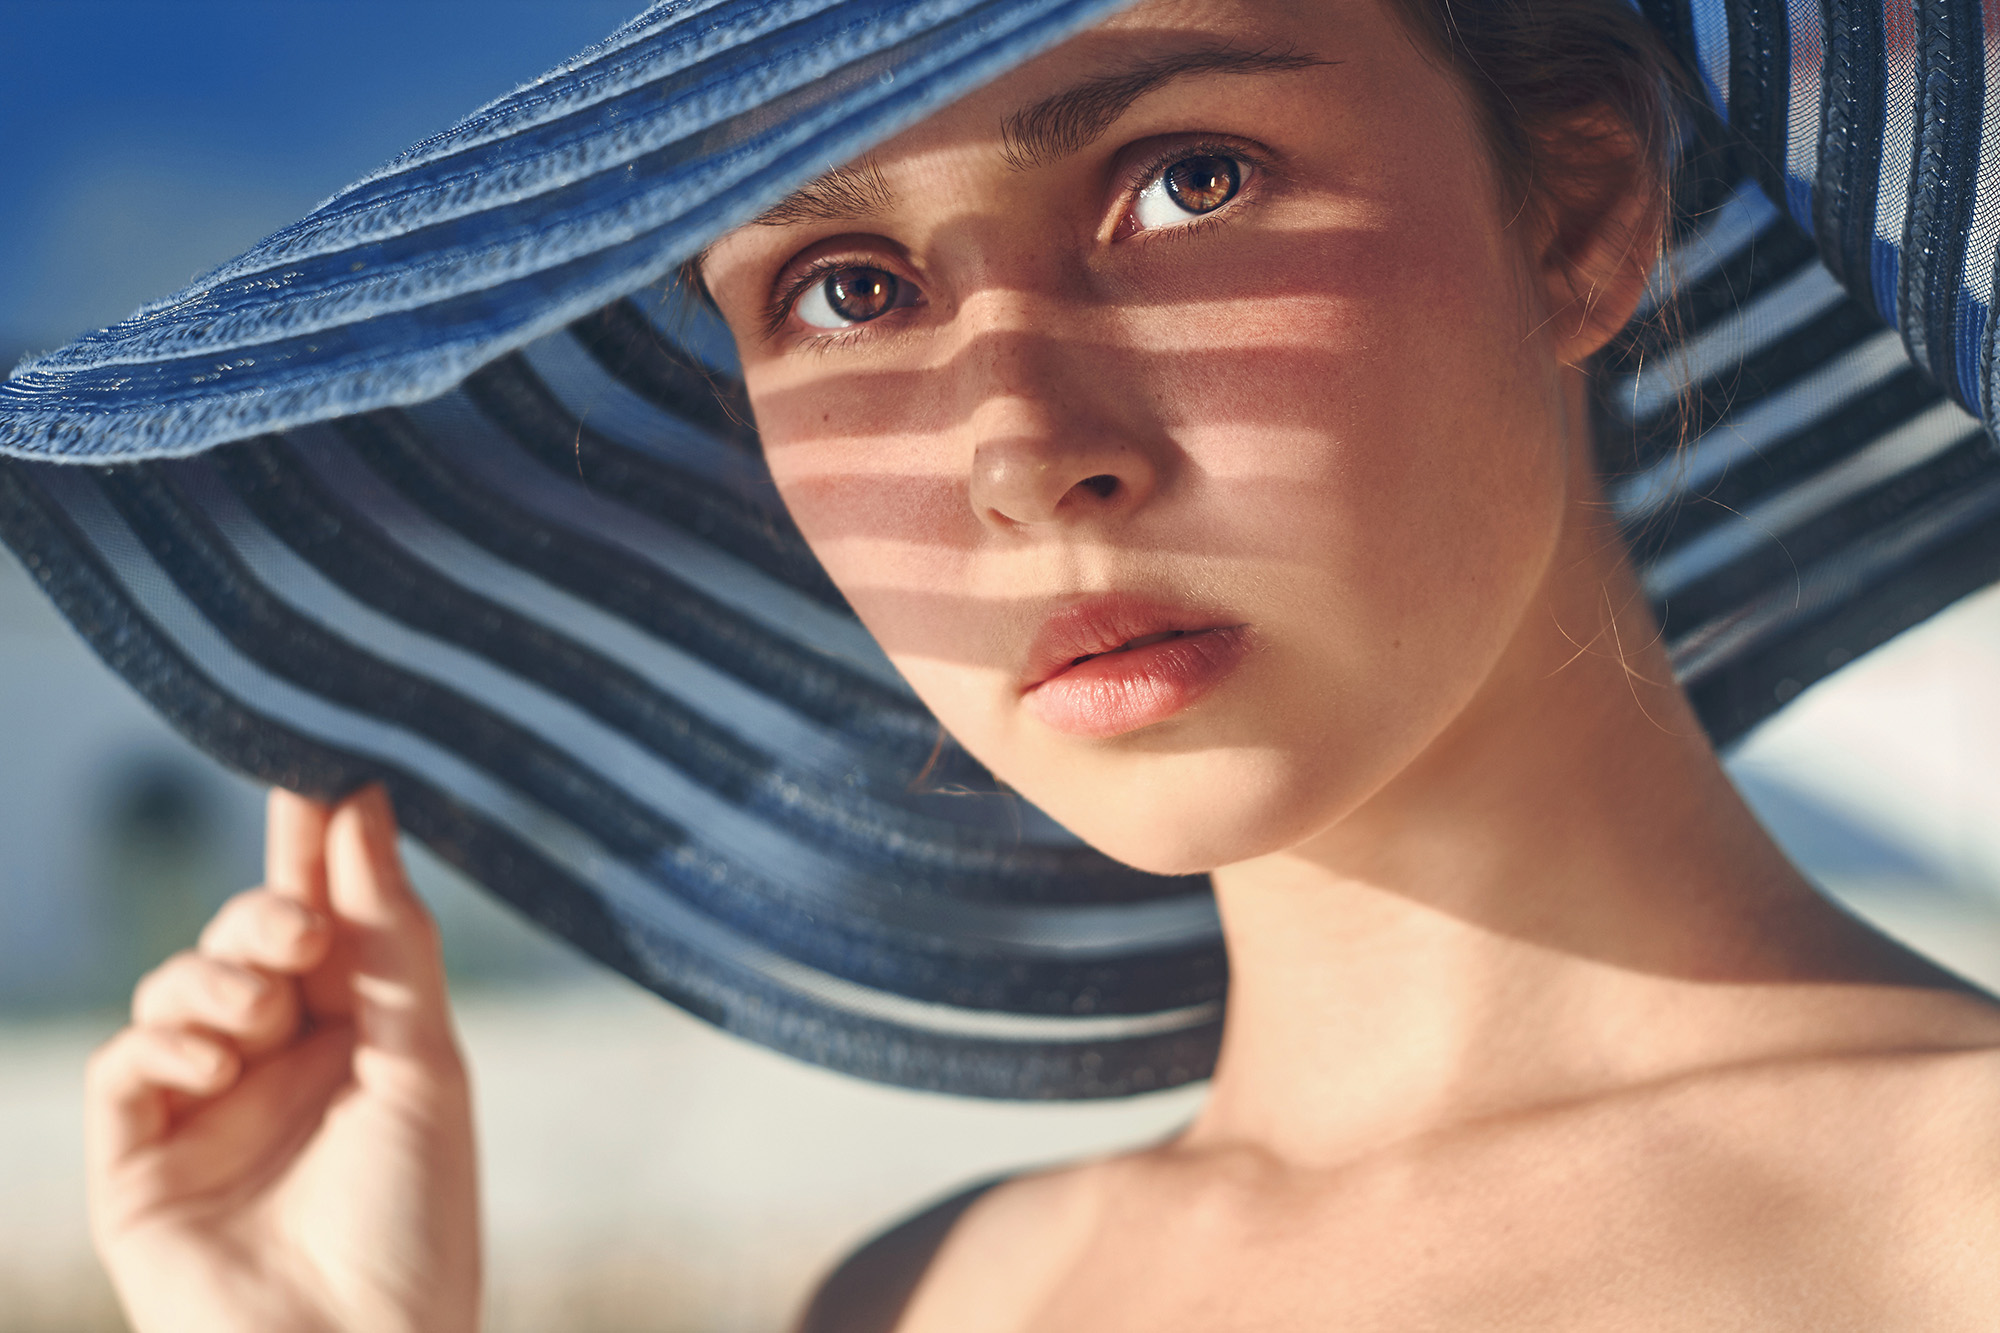 female hat portrait photography blue shadow face